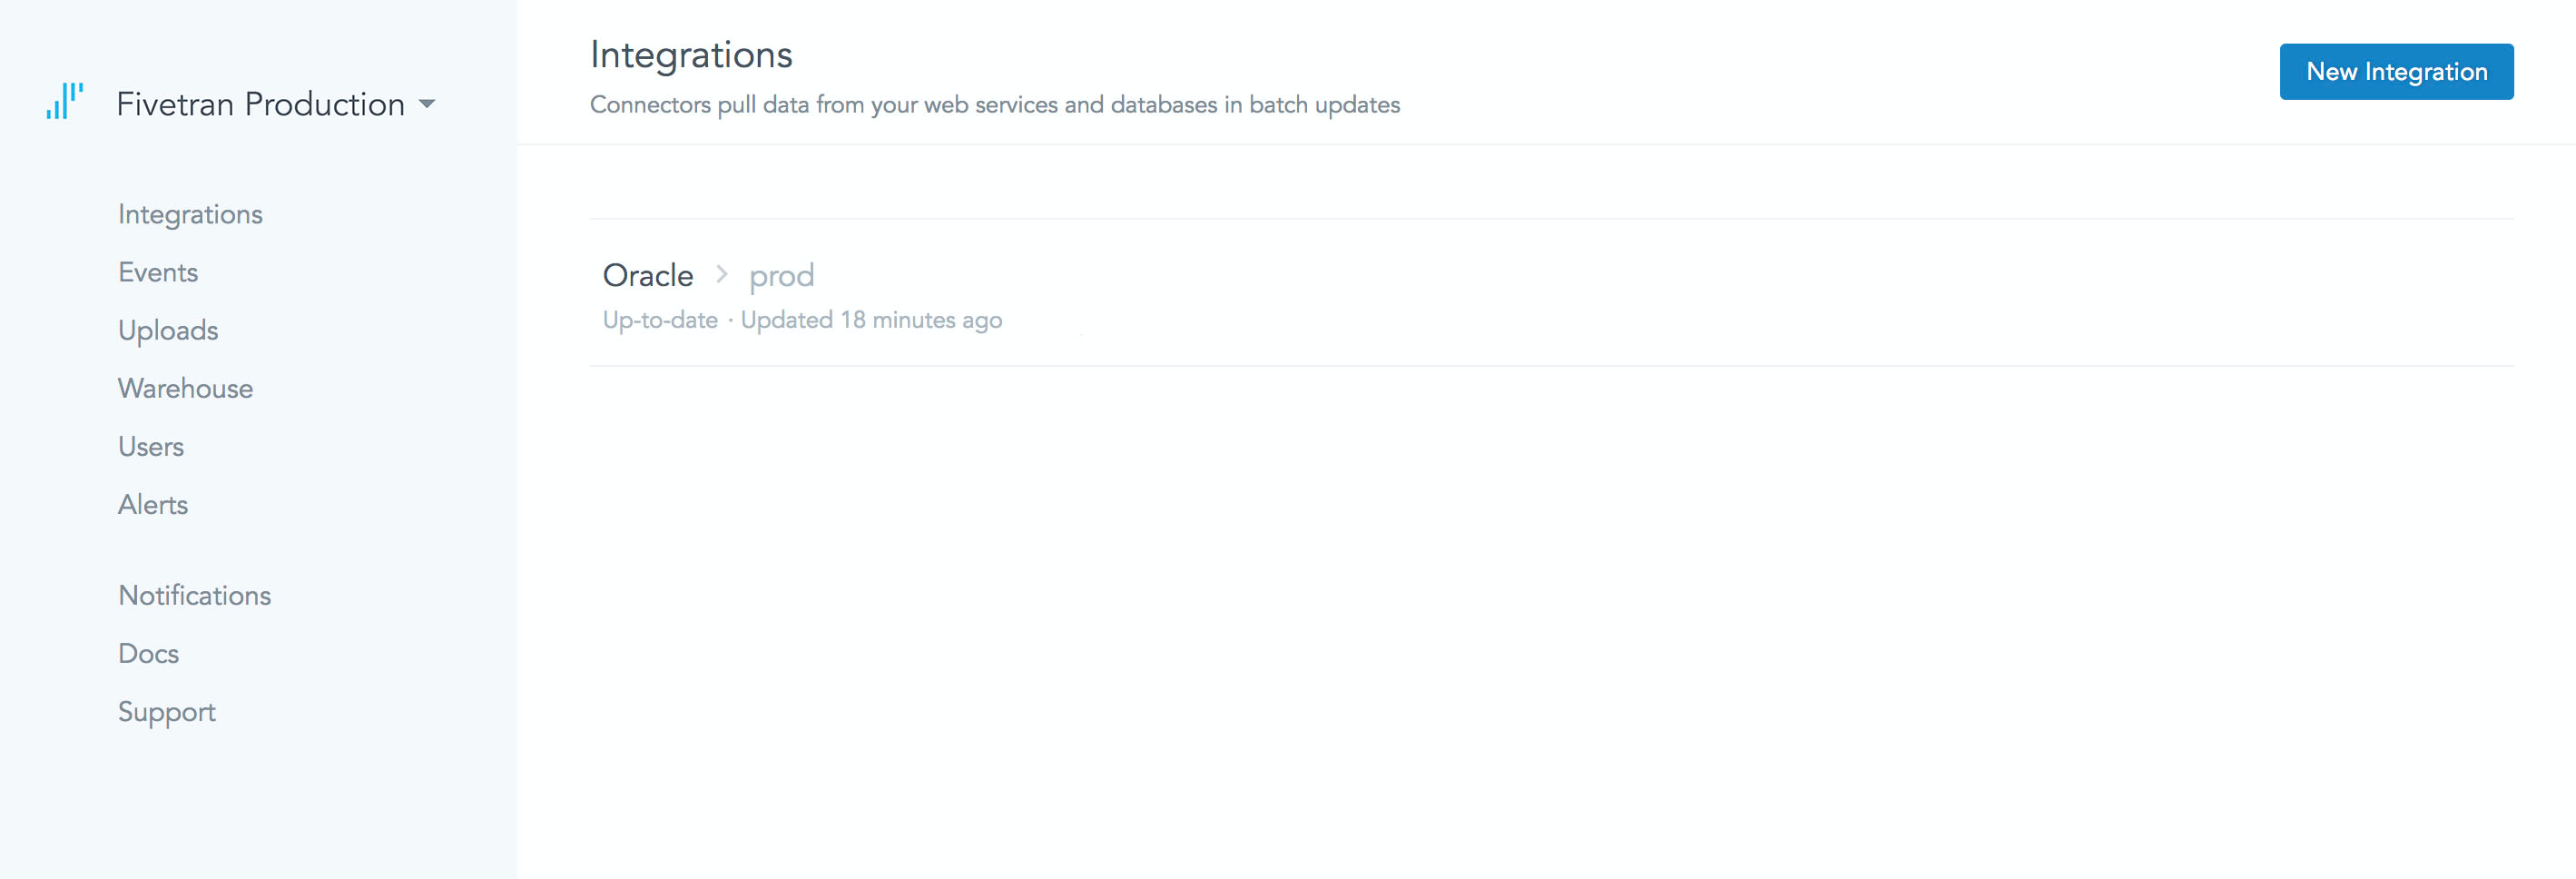 Users can integrate with Oracle